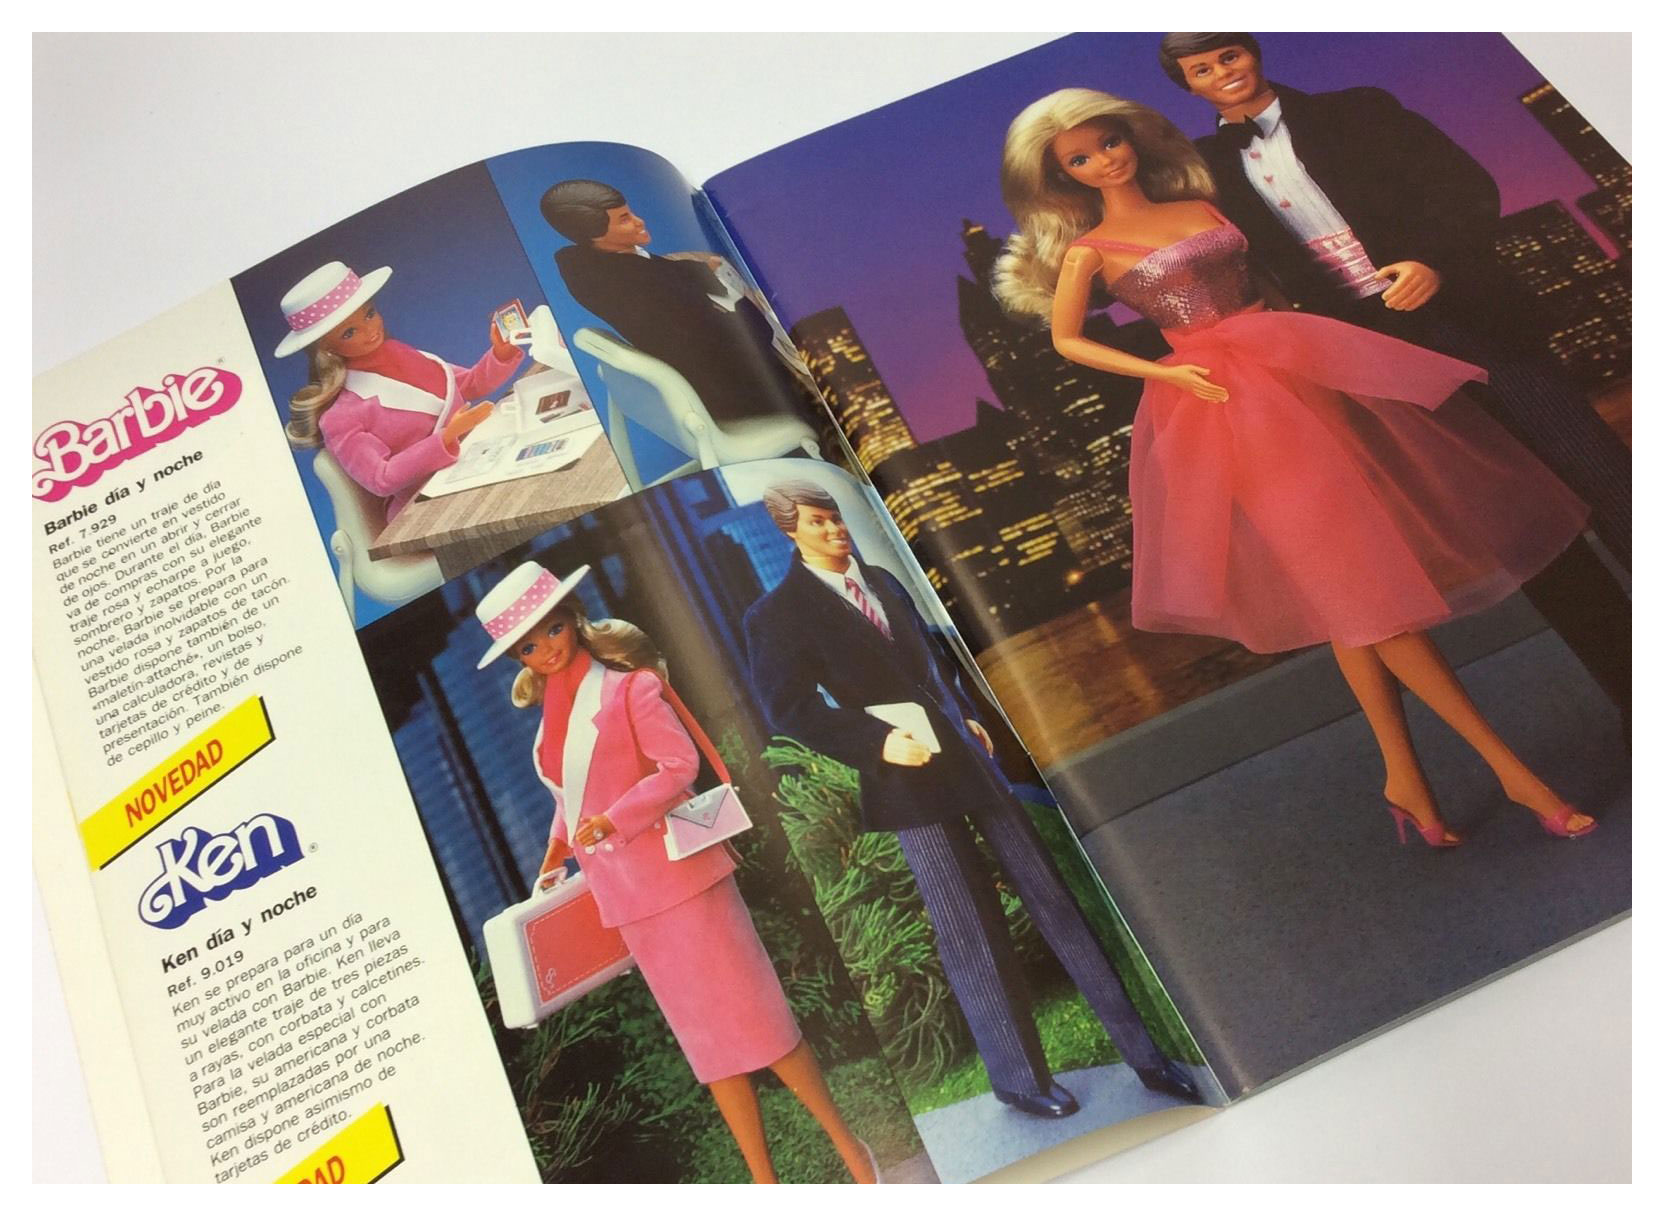 From 1985 Spanish Mattel catalogue